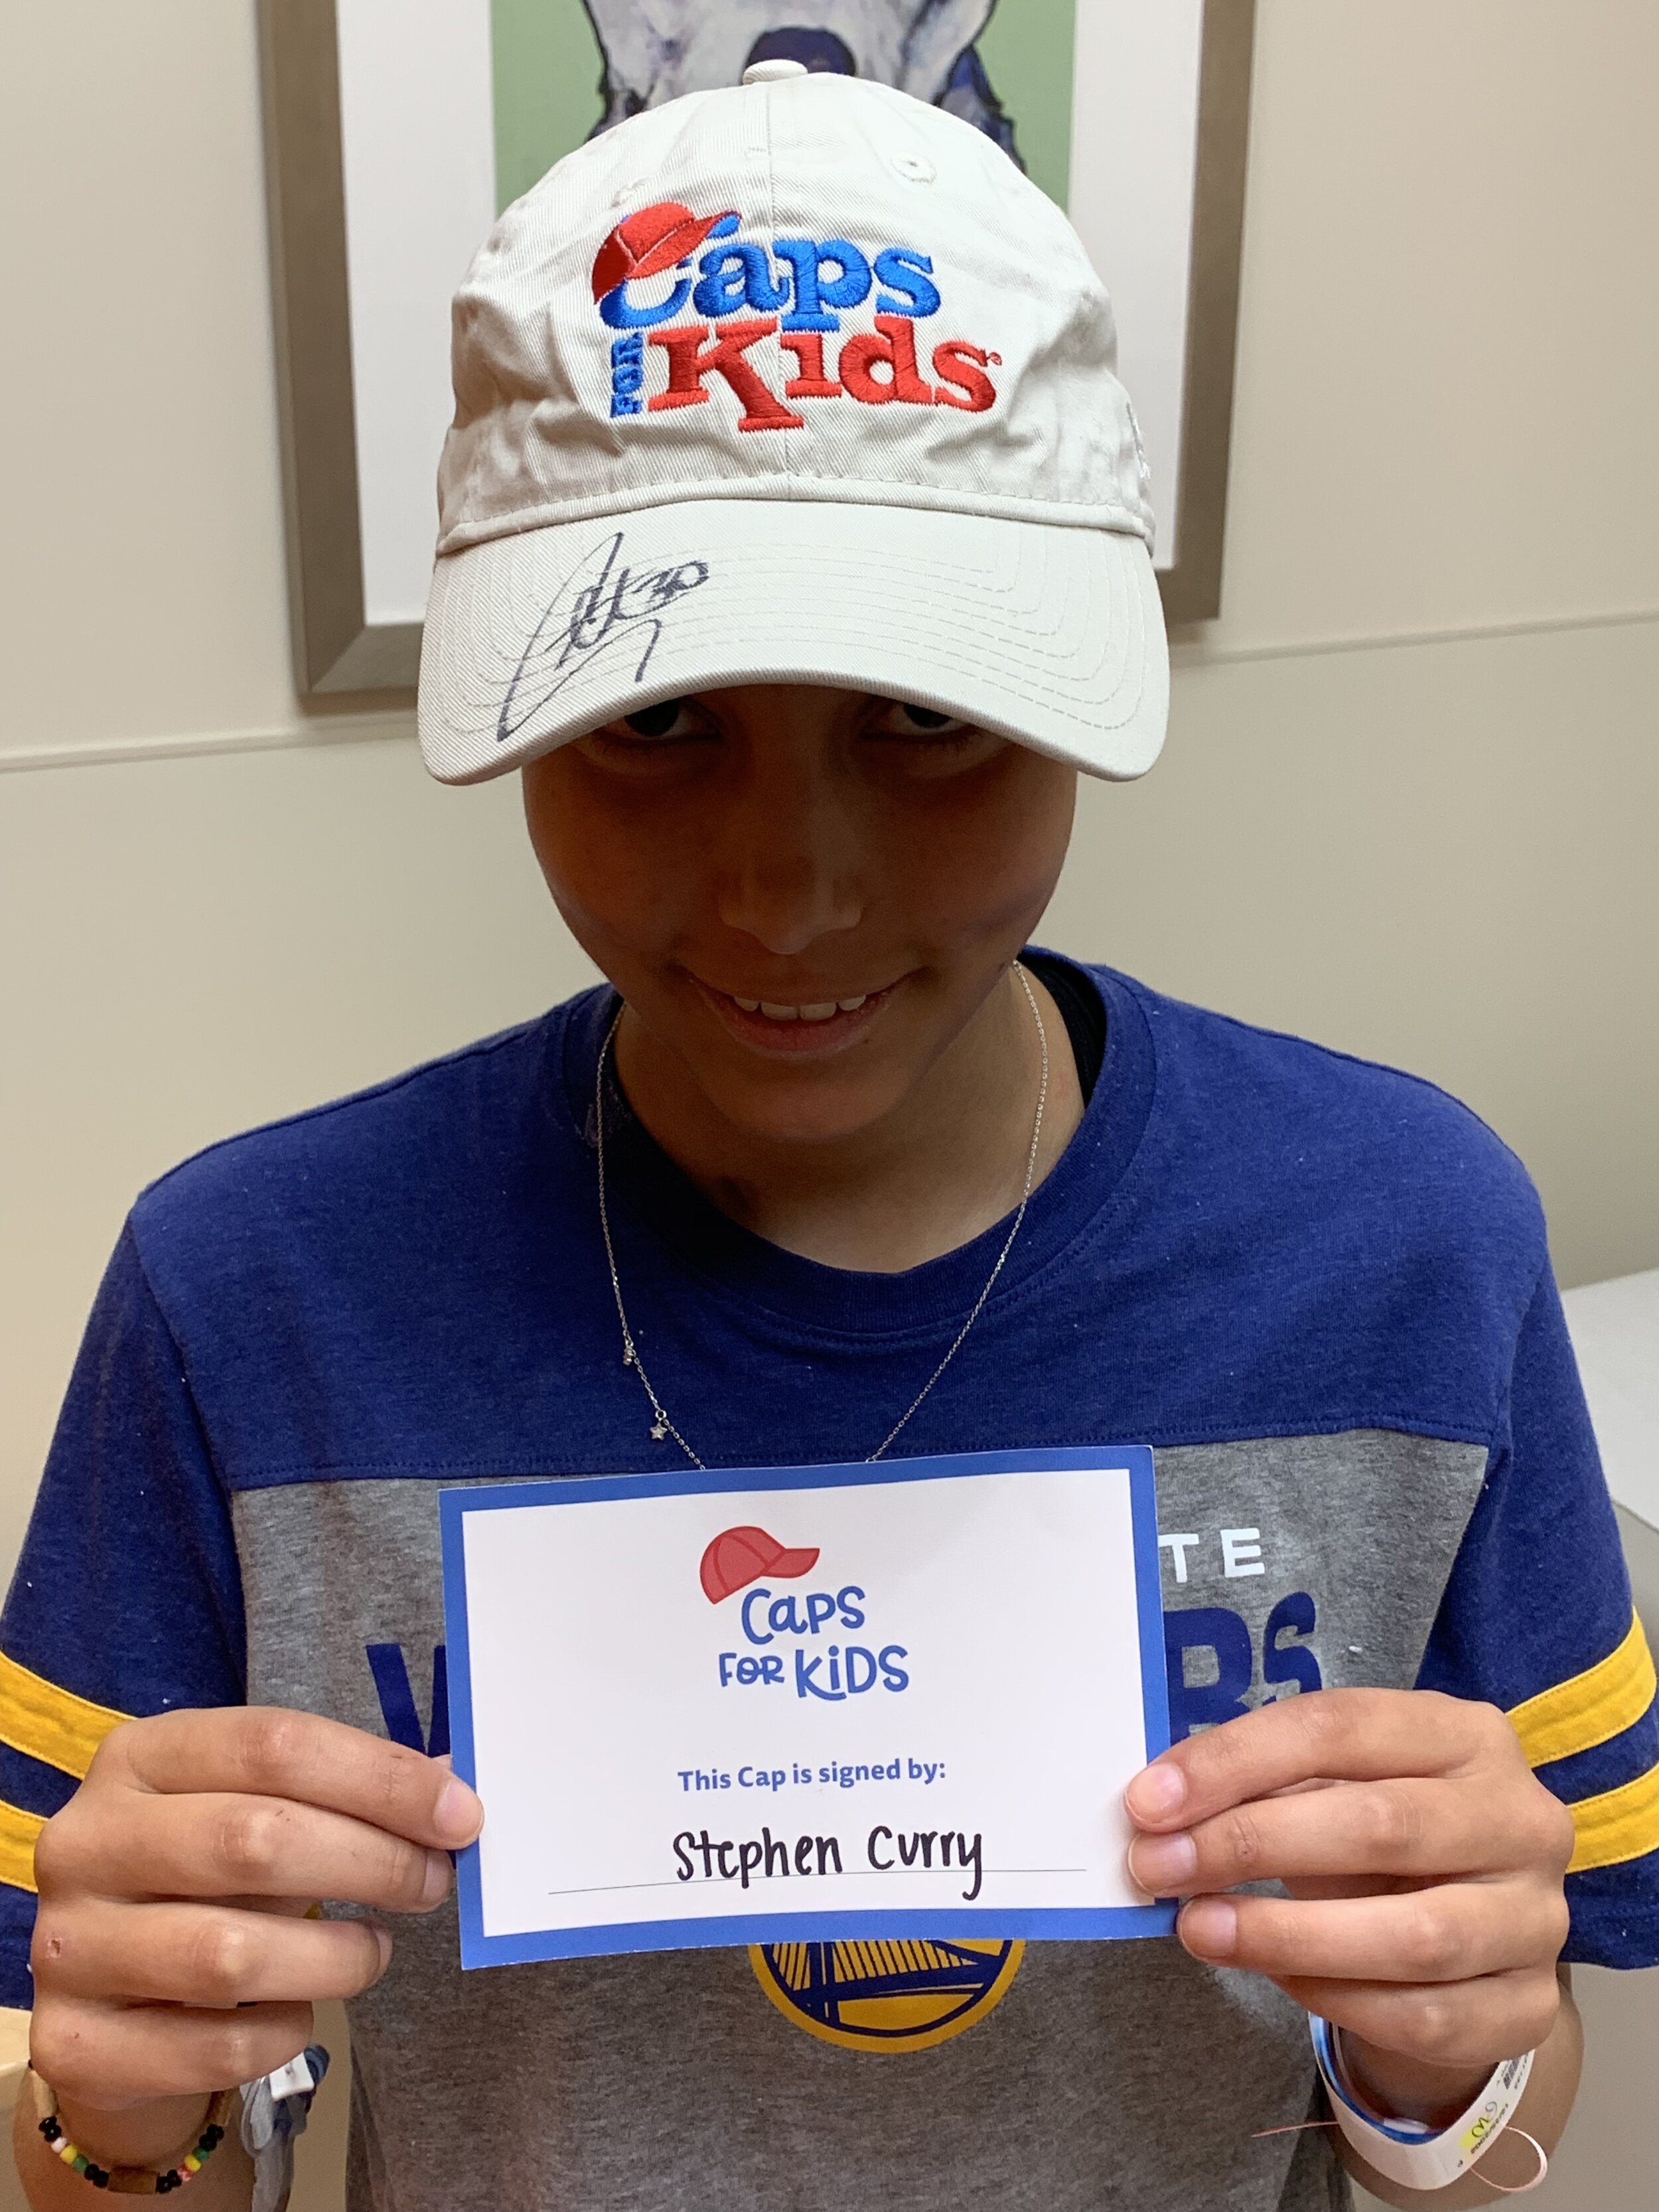 Former Competitive Gymnast Flips Over Steph Curry Cap Caps For Kids Creating Smiles For Kids With Cancer